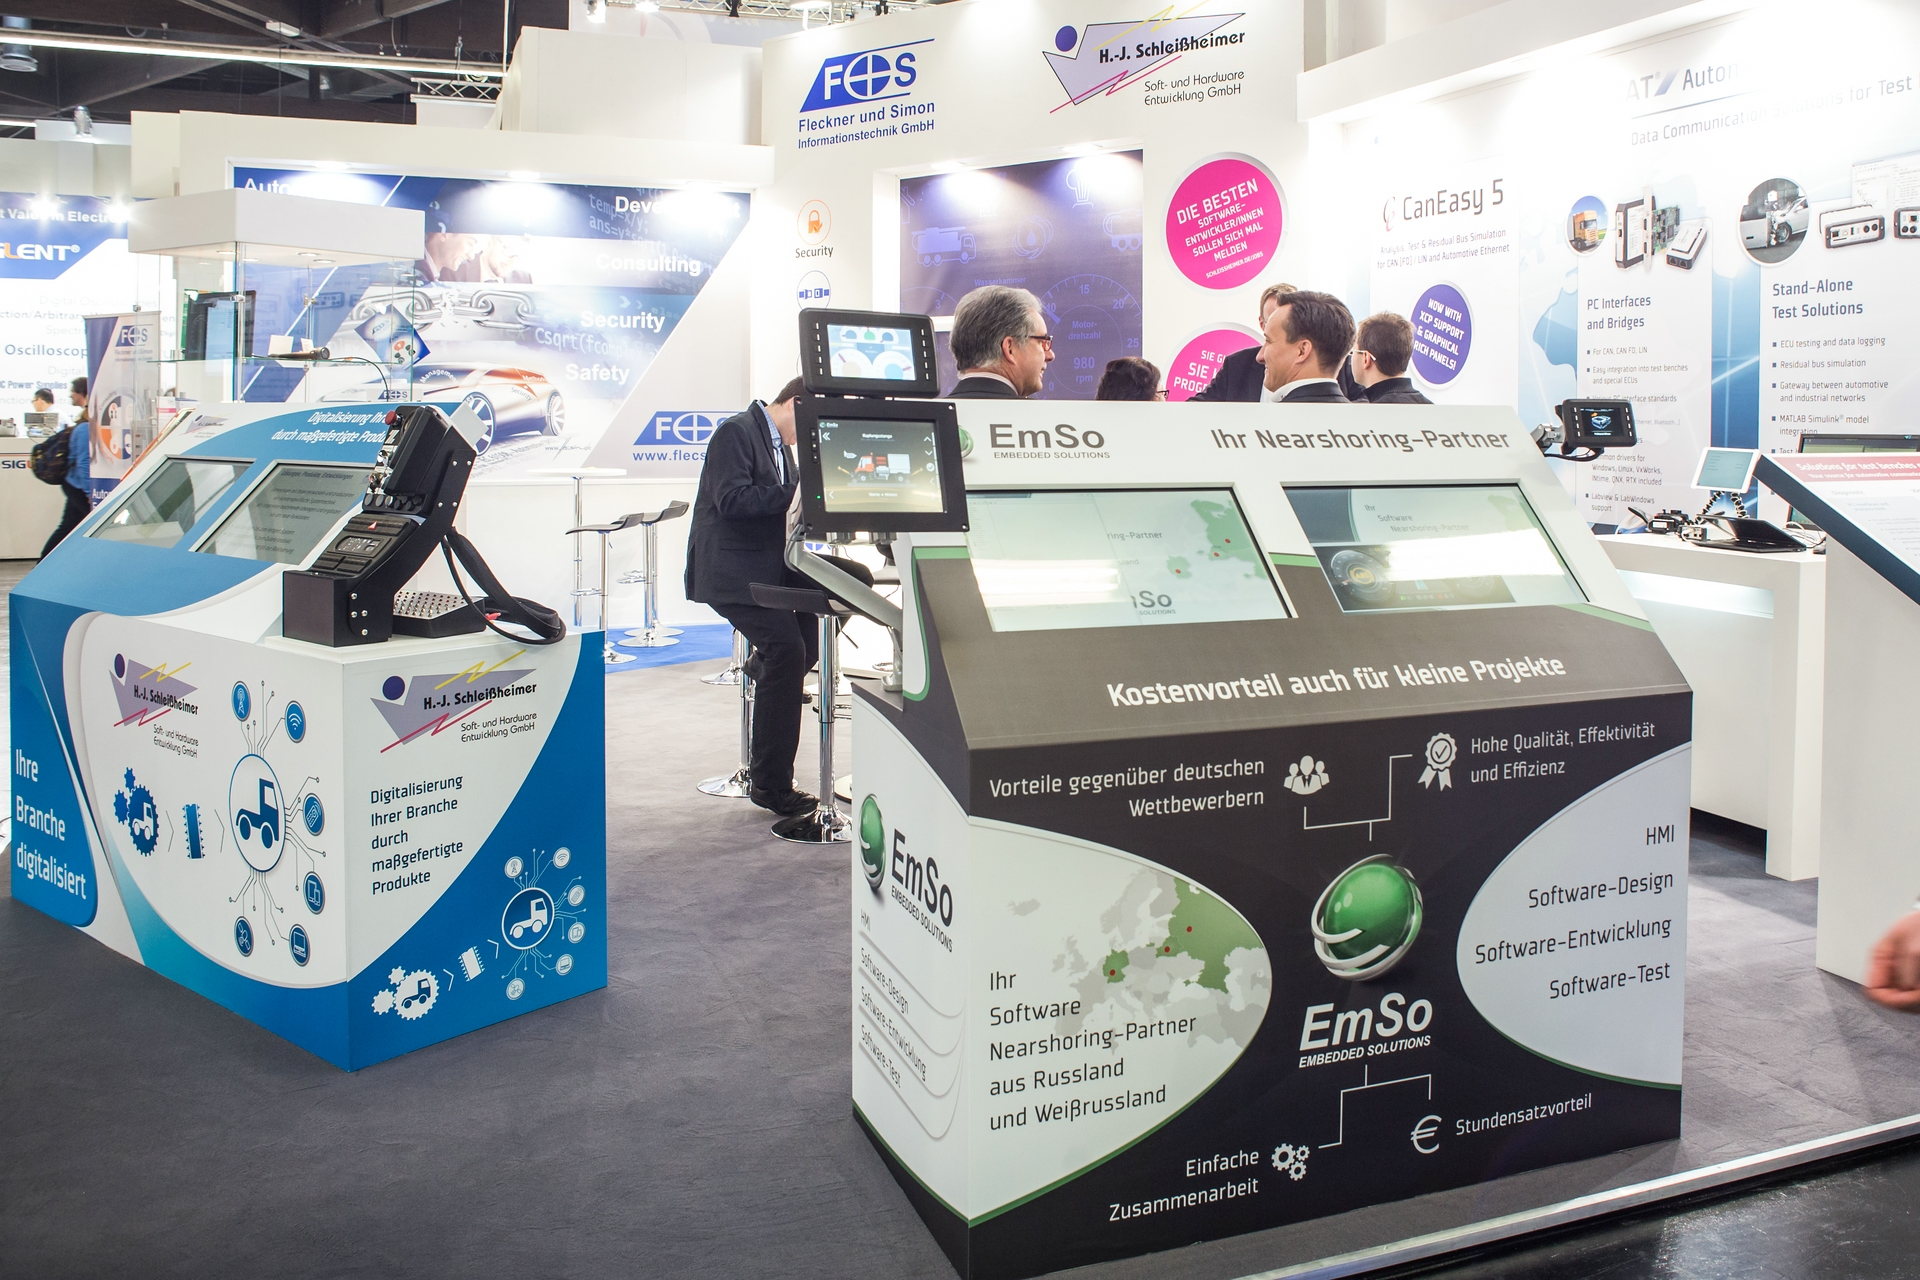 Embedded World Exhibition 2019